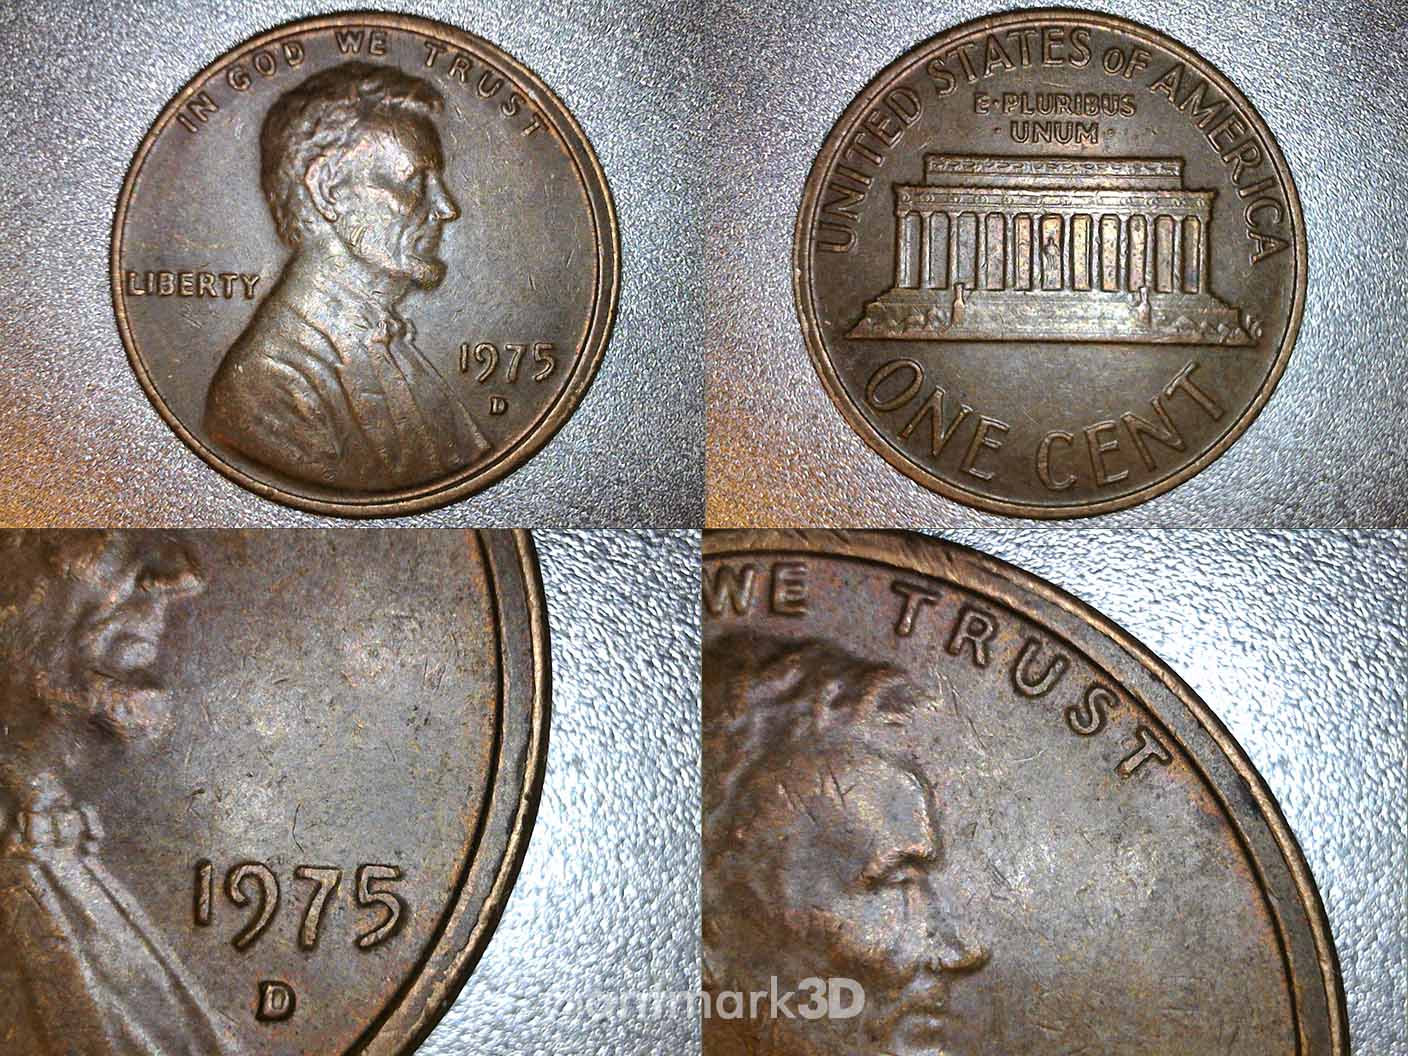 1975 D Lincoln cent with a strong double rim - Coin